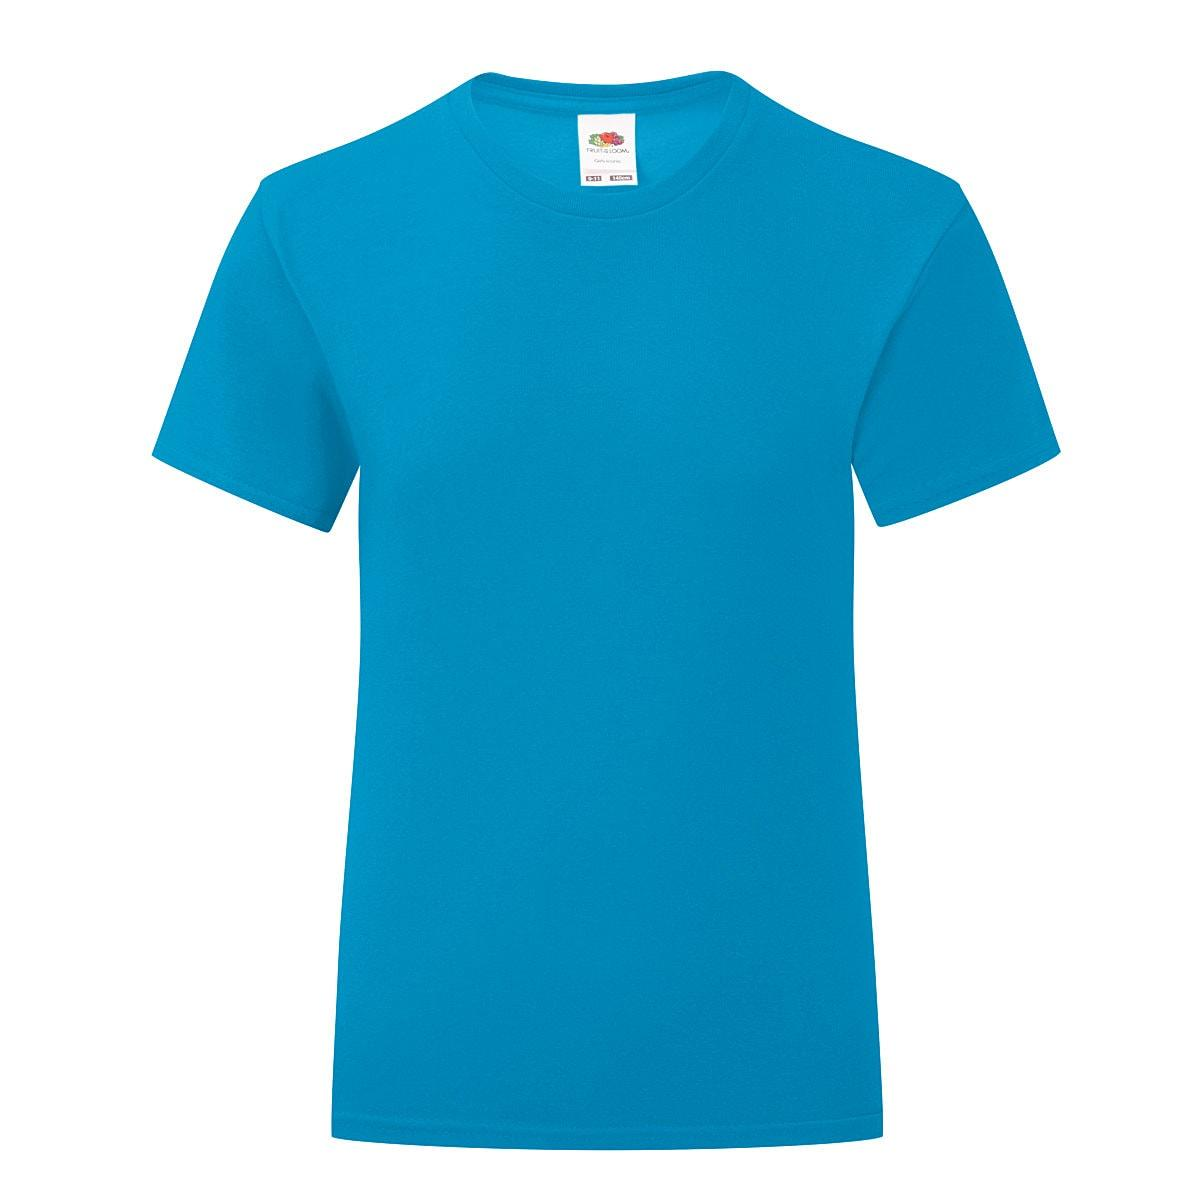 Fruit Of The Loom Girls Iconic T-Shirt in Azure Blue (Product Code: 61025)